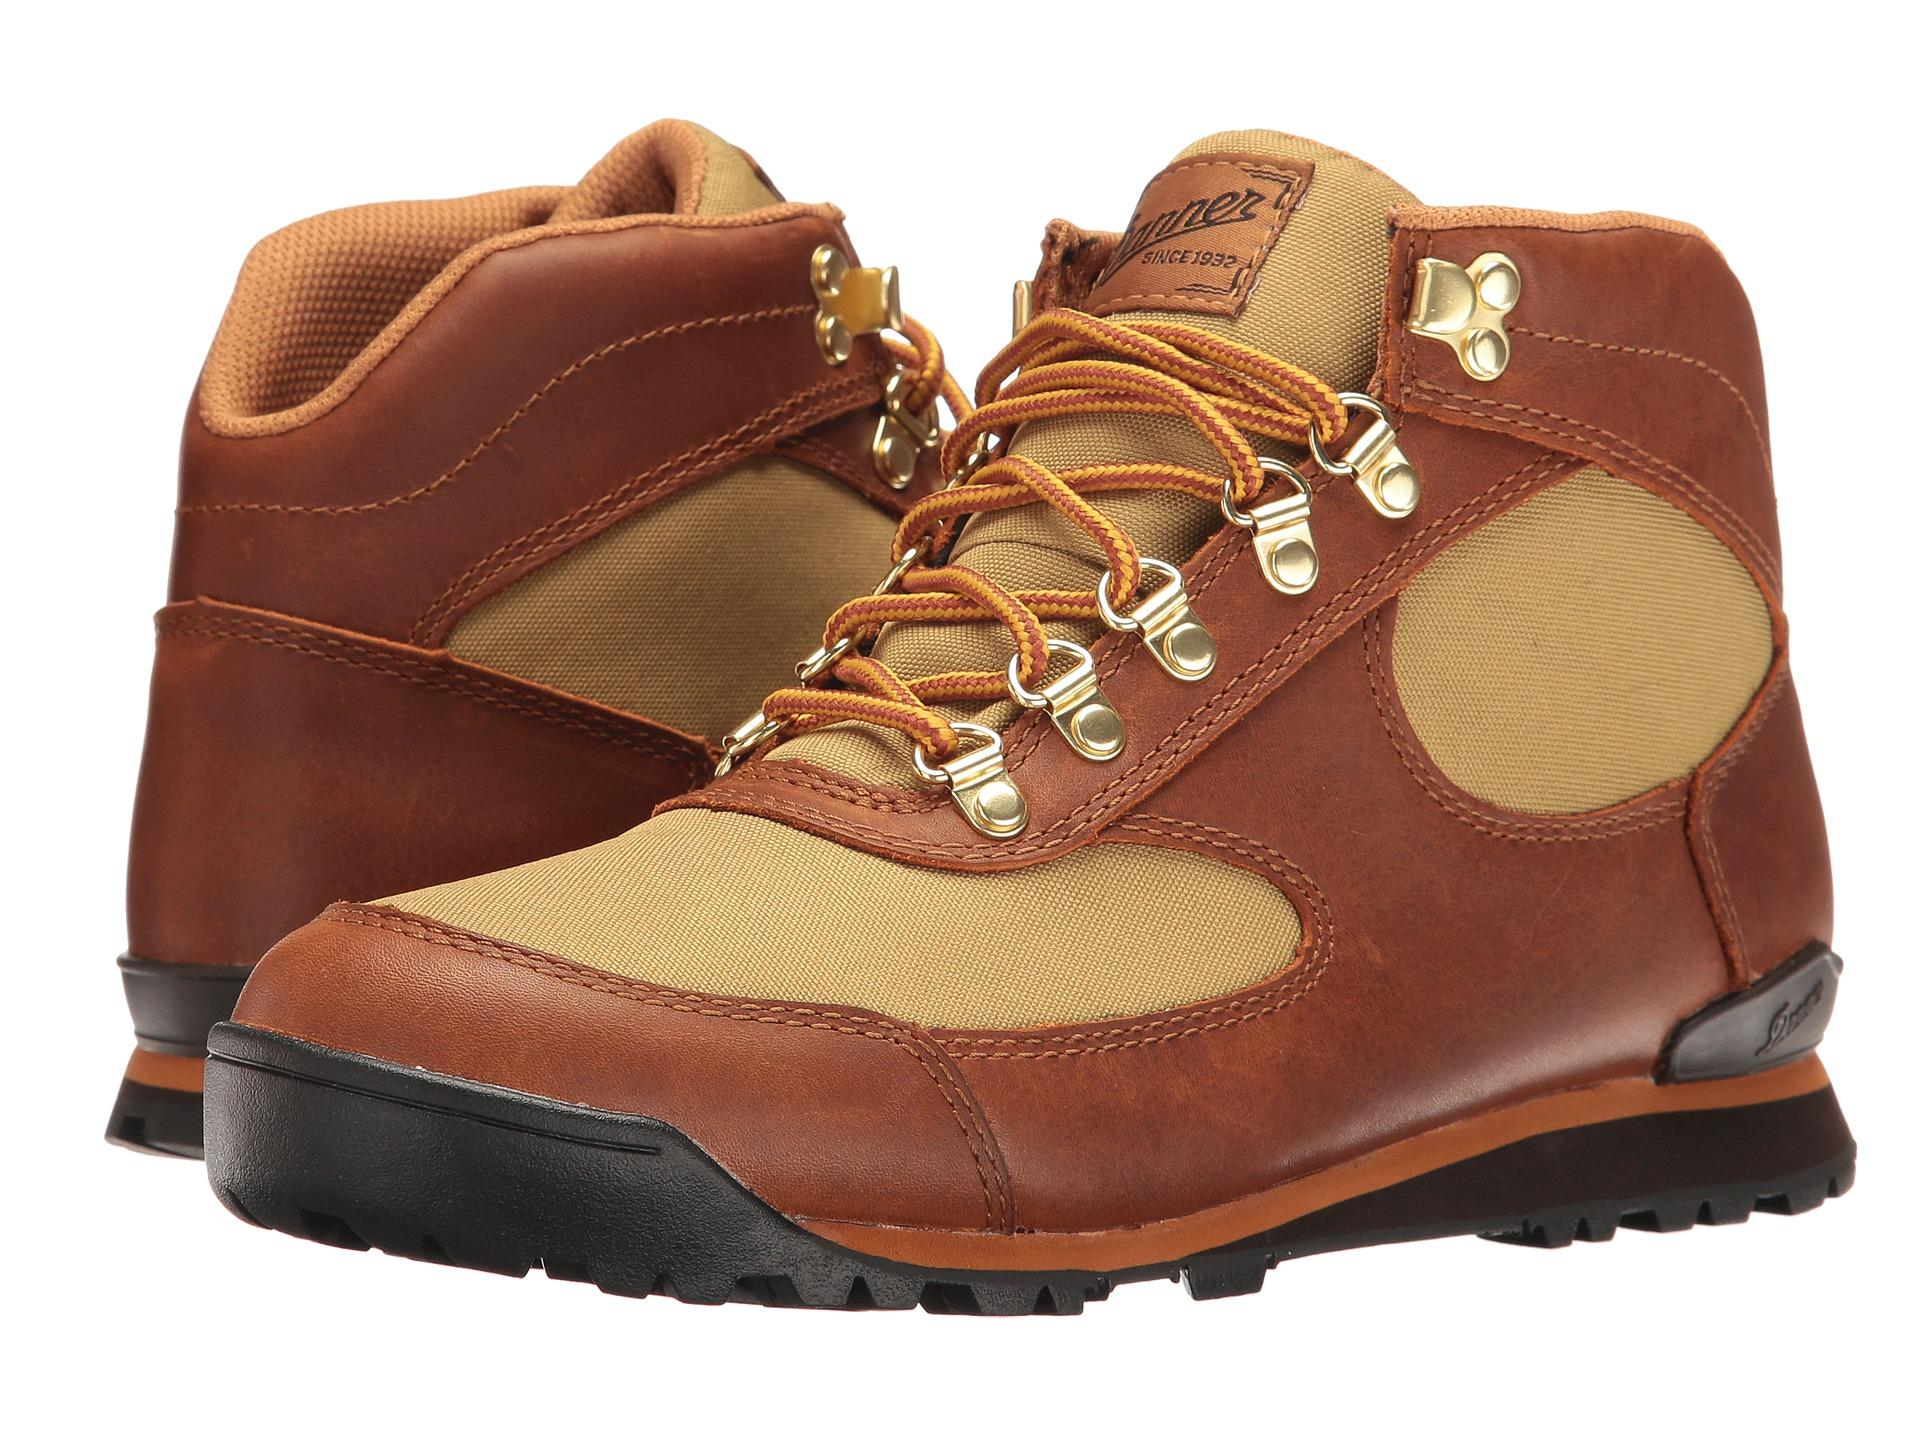 Danner Jag In Brown For Men Lyst